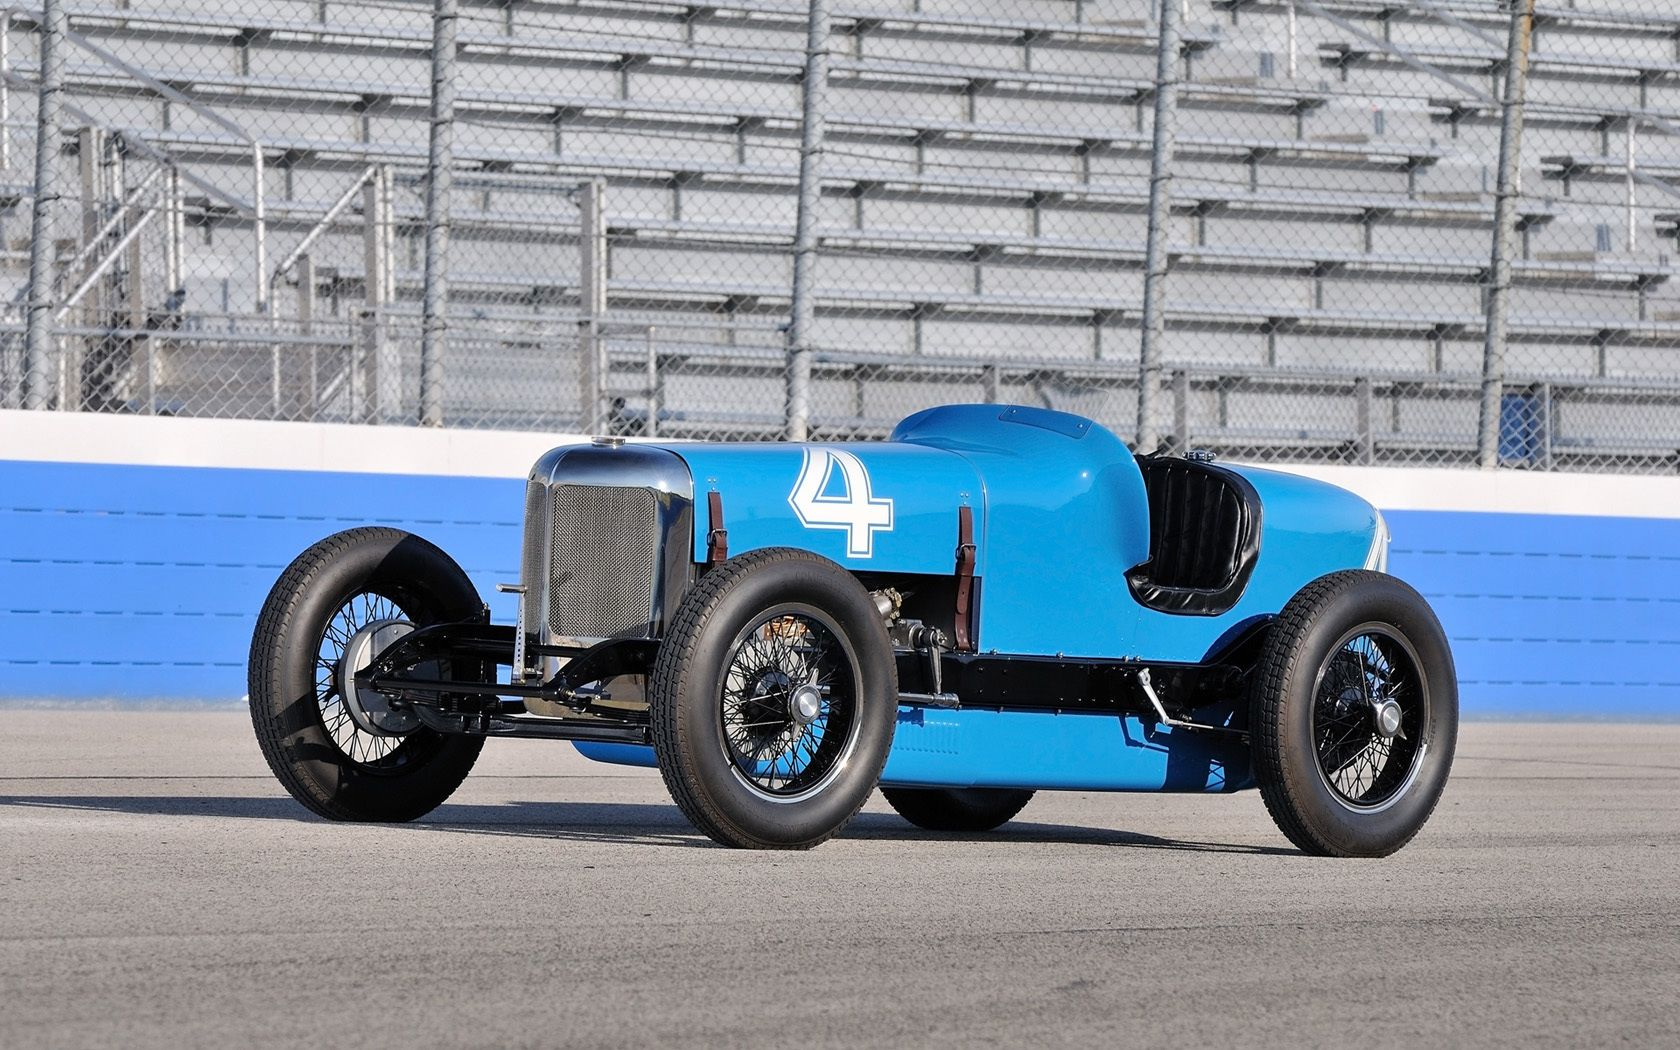 Hupp Comet #4 Indy Car 1932 | Car Design | Pinterest | Indy cars ...